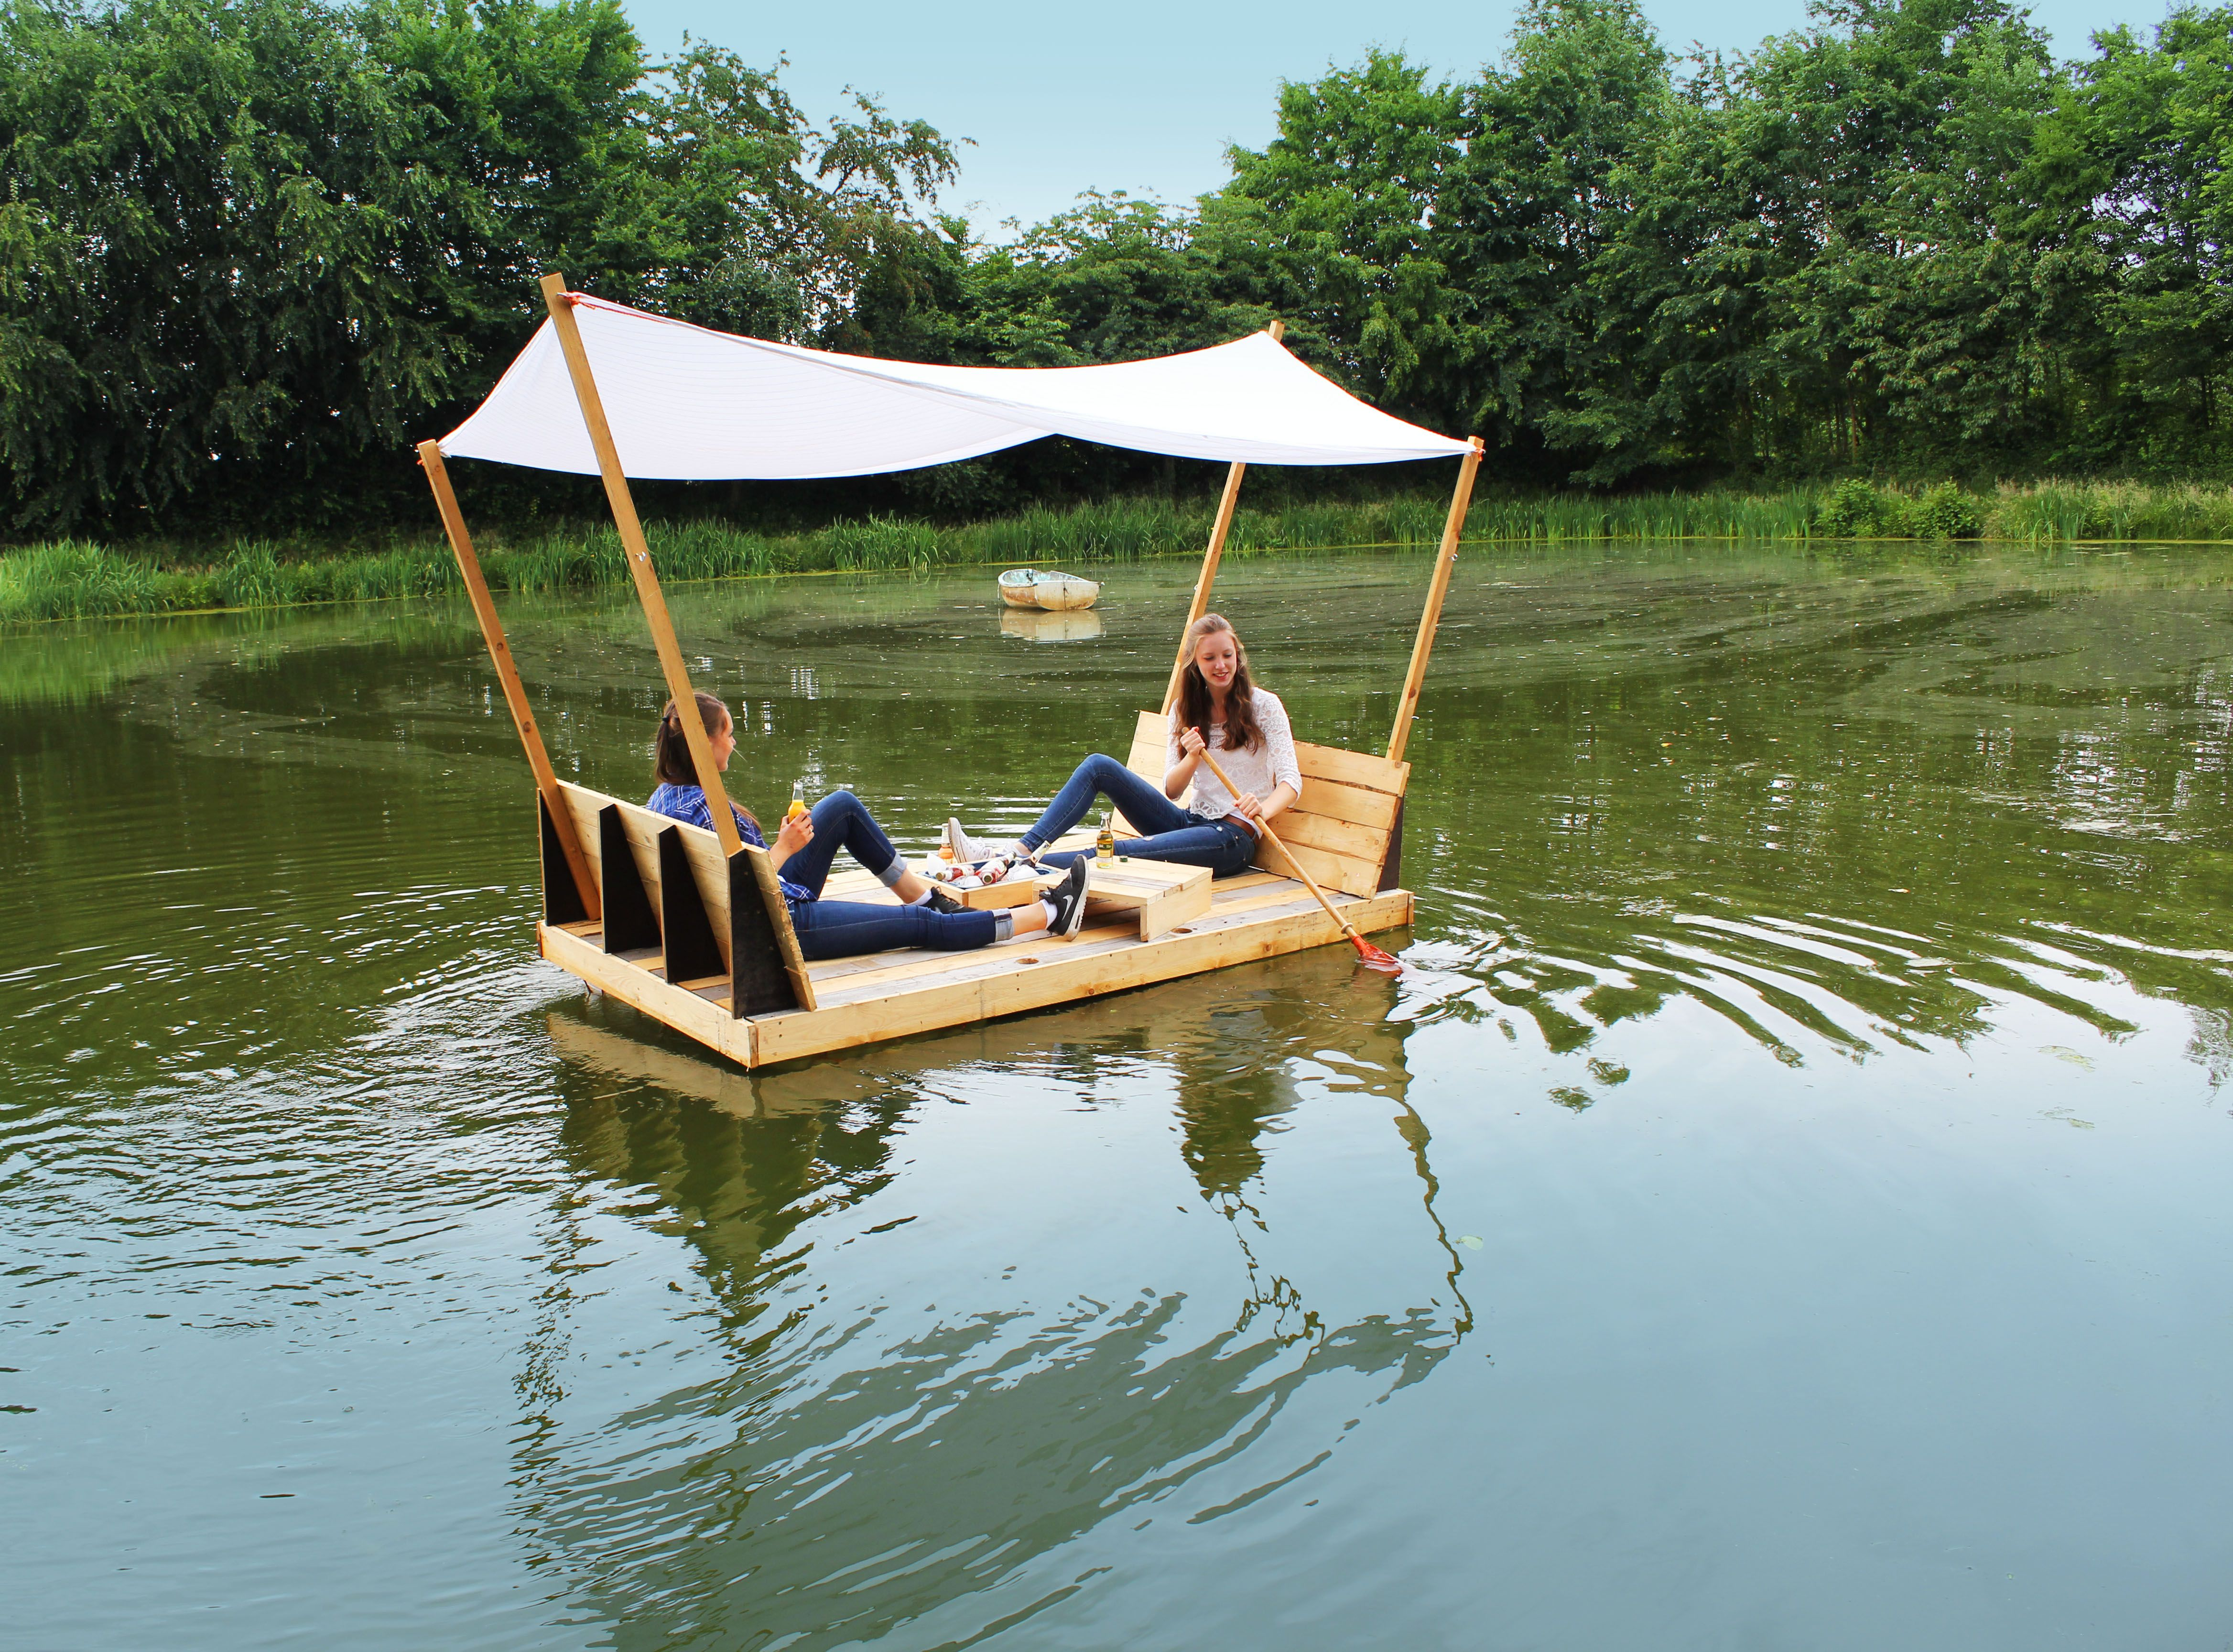 This Is The First Raft I Ever Built I Always Wanted To Create One For My Family And Friends It Is Mainly Made Out Of An Upcycl Outdoor Floating Raft Diy